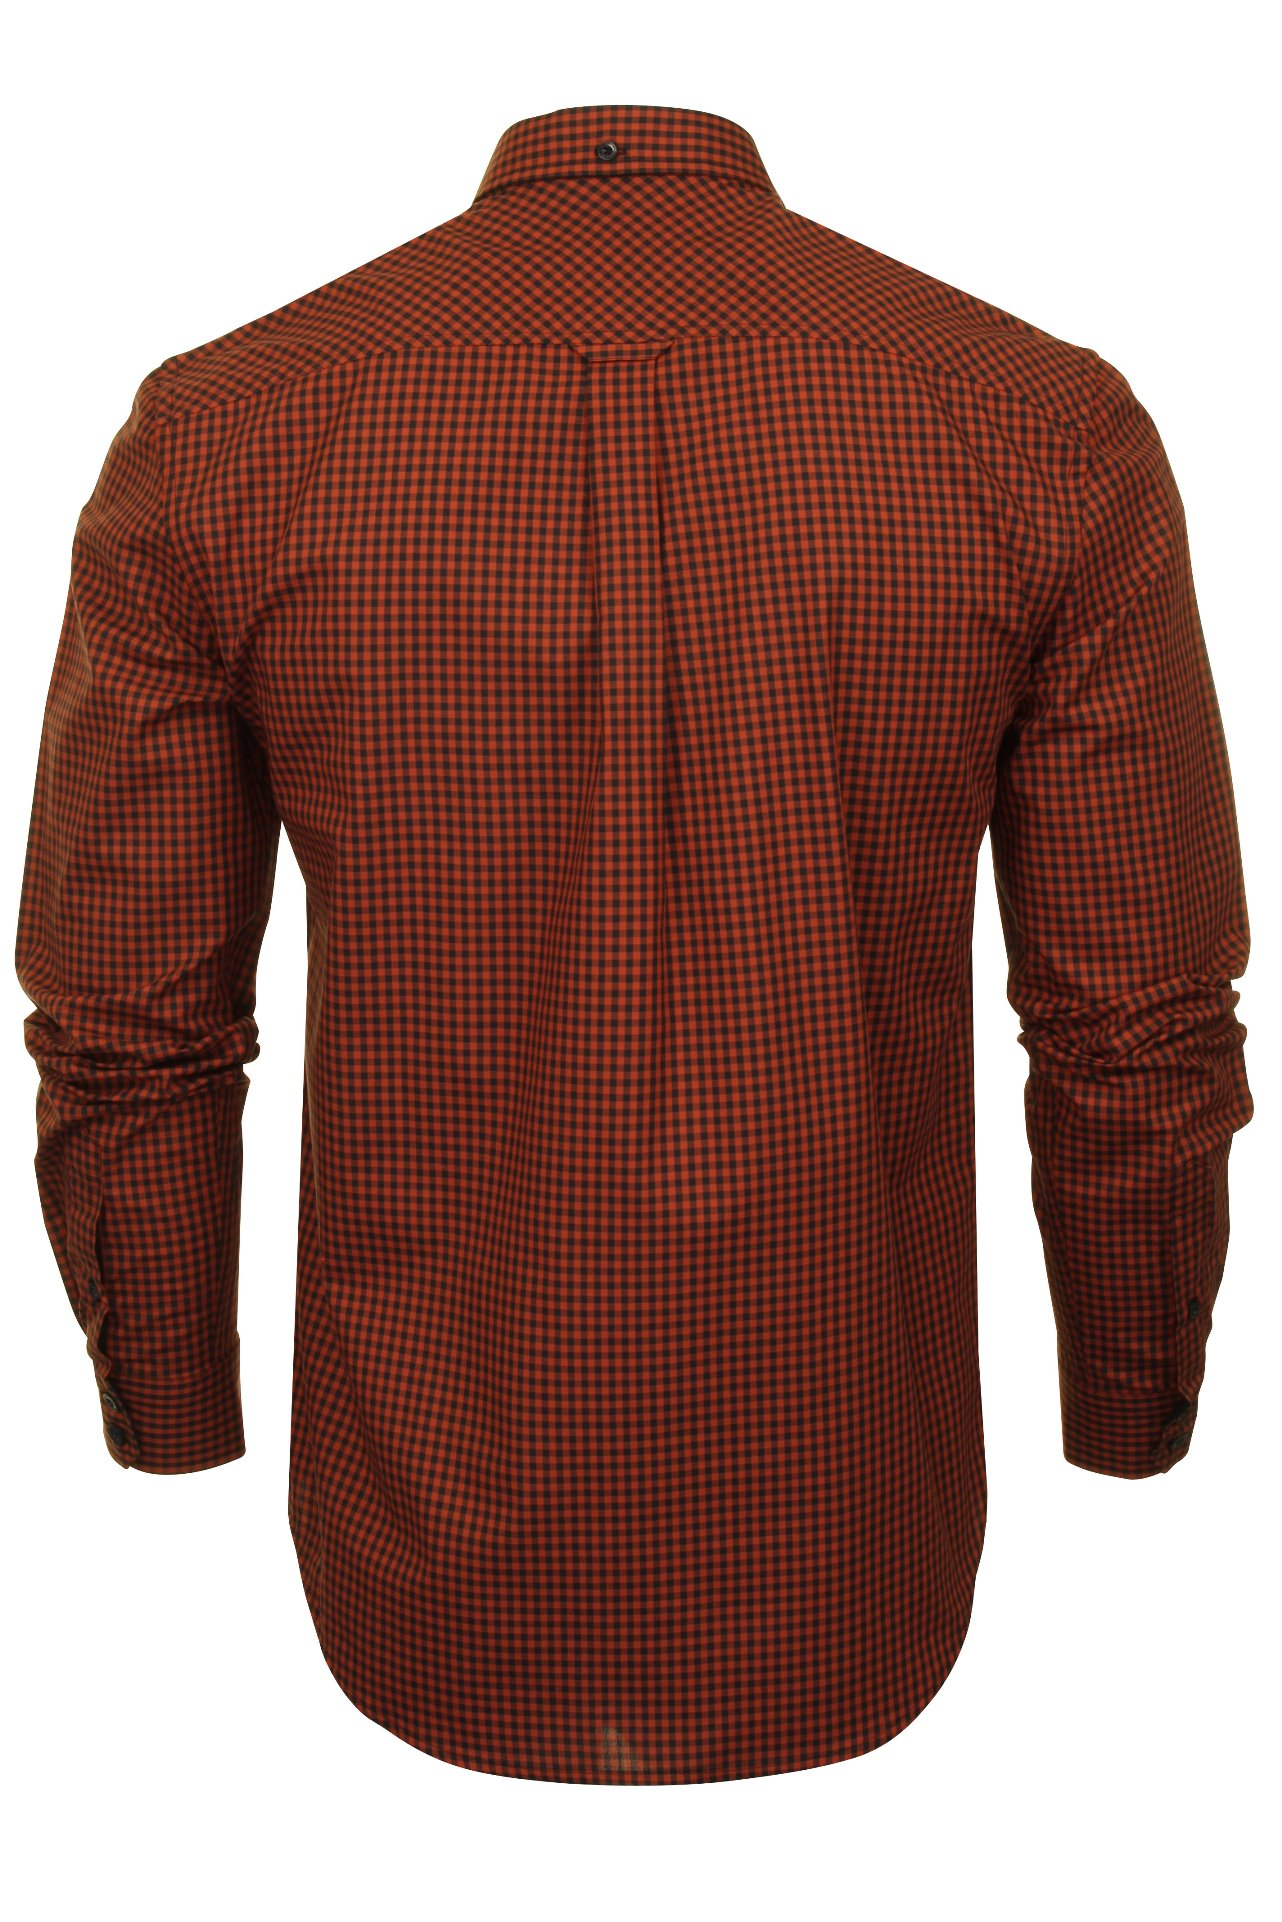 Ben-Sherman-Mens-Long-Sleeved-Gingham-Check-Shirt thumbnail 11